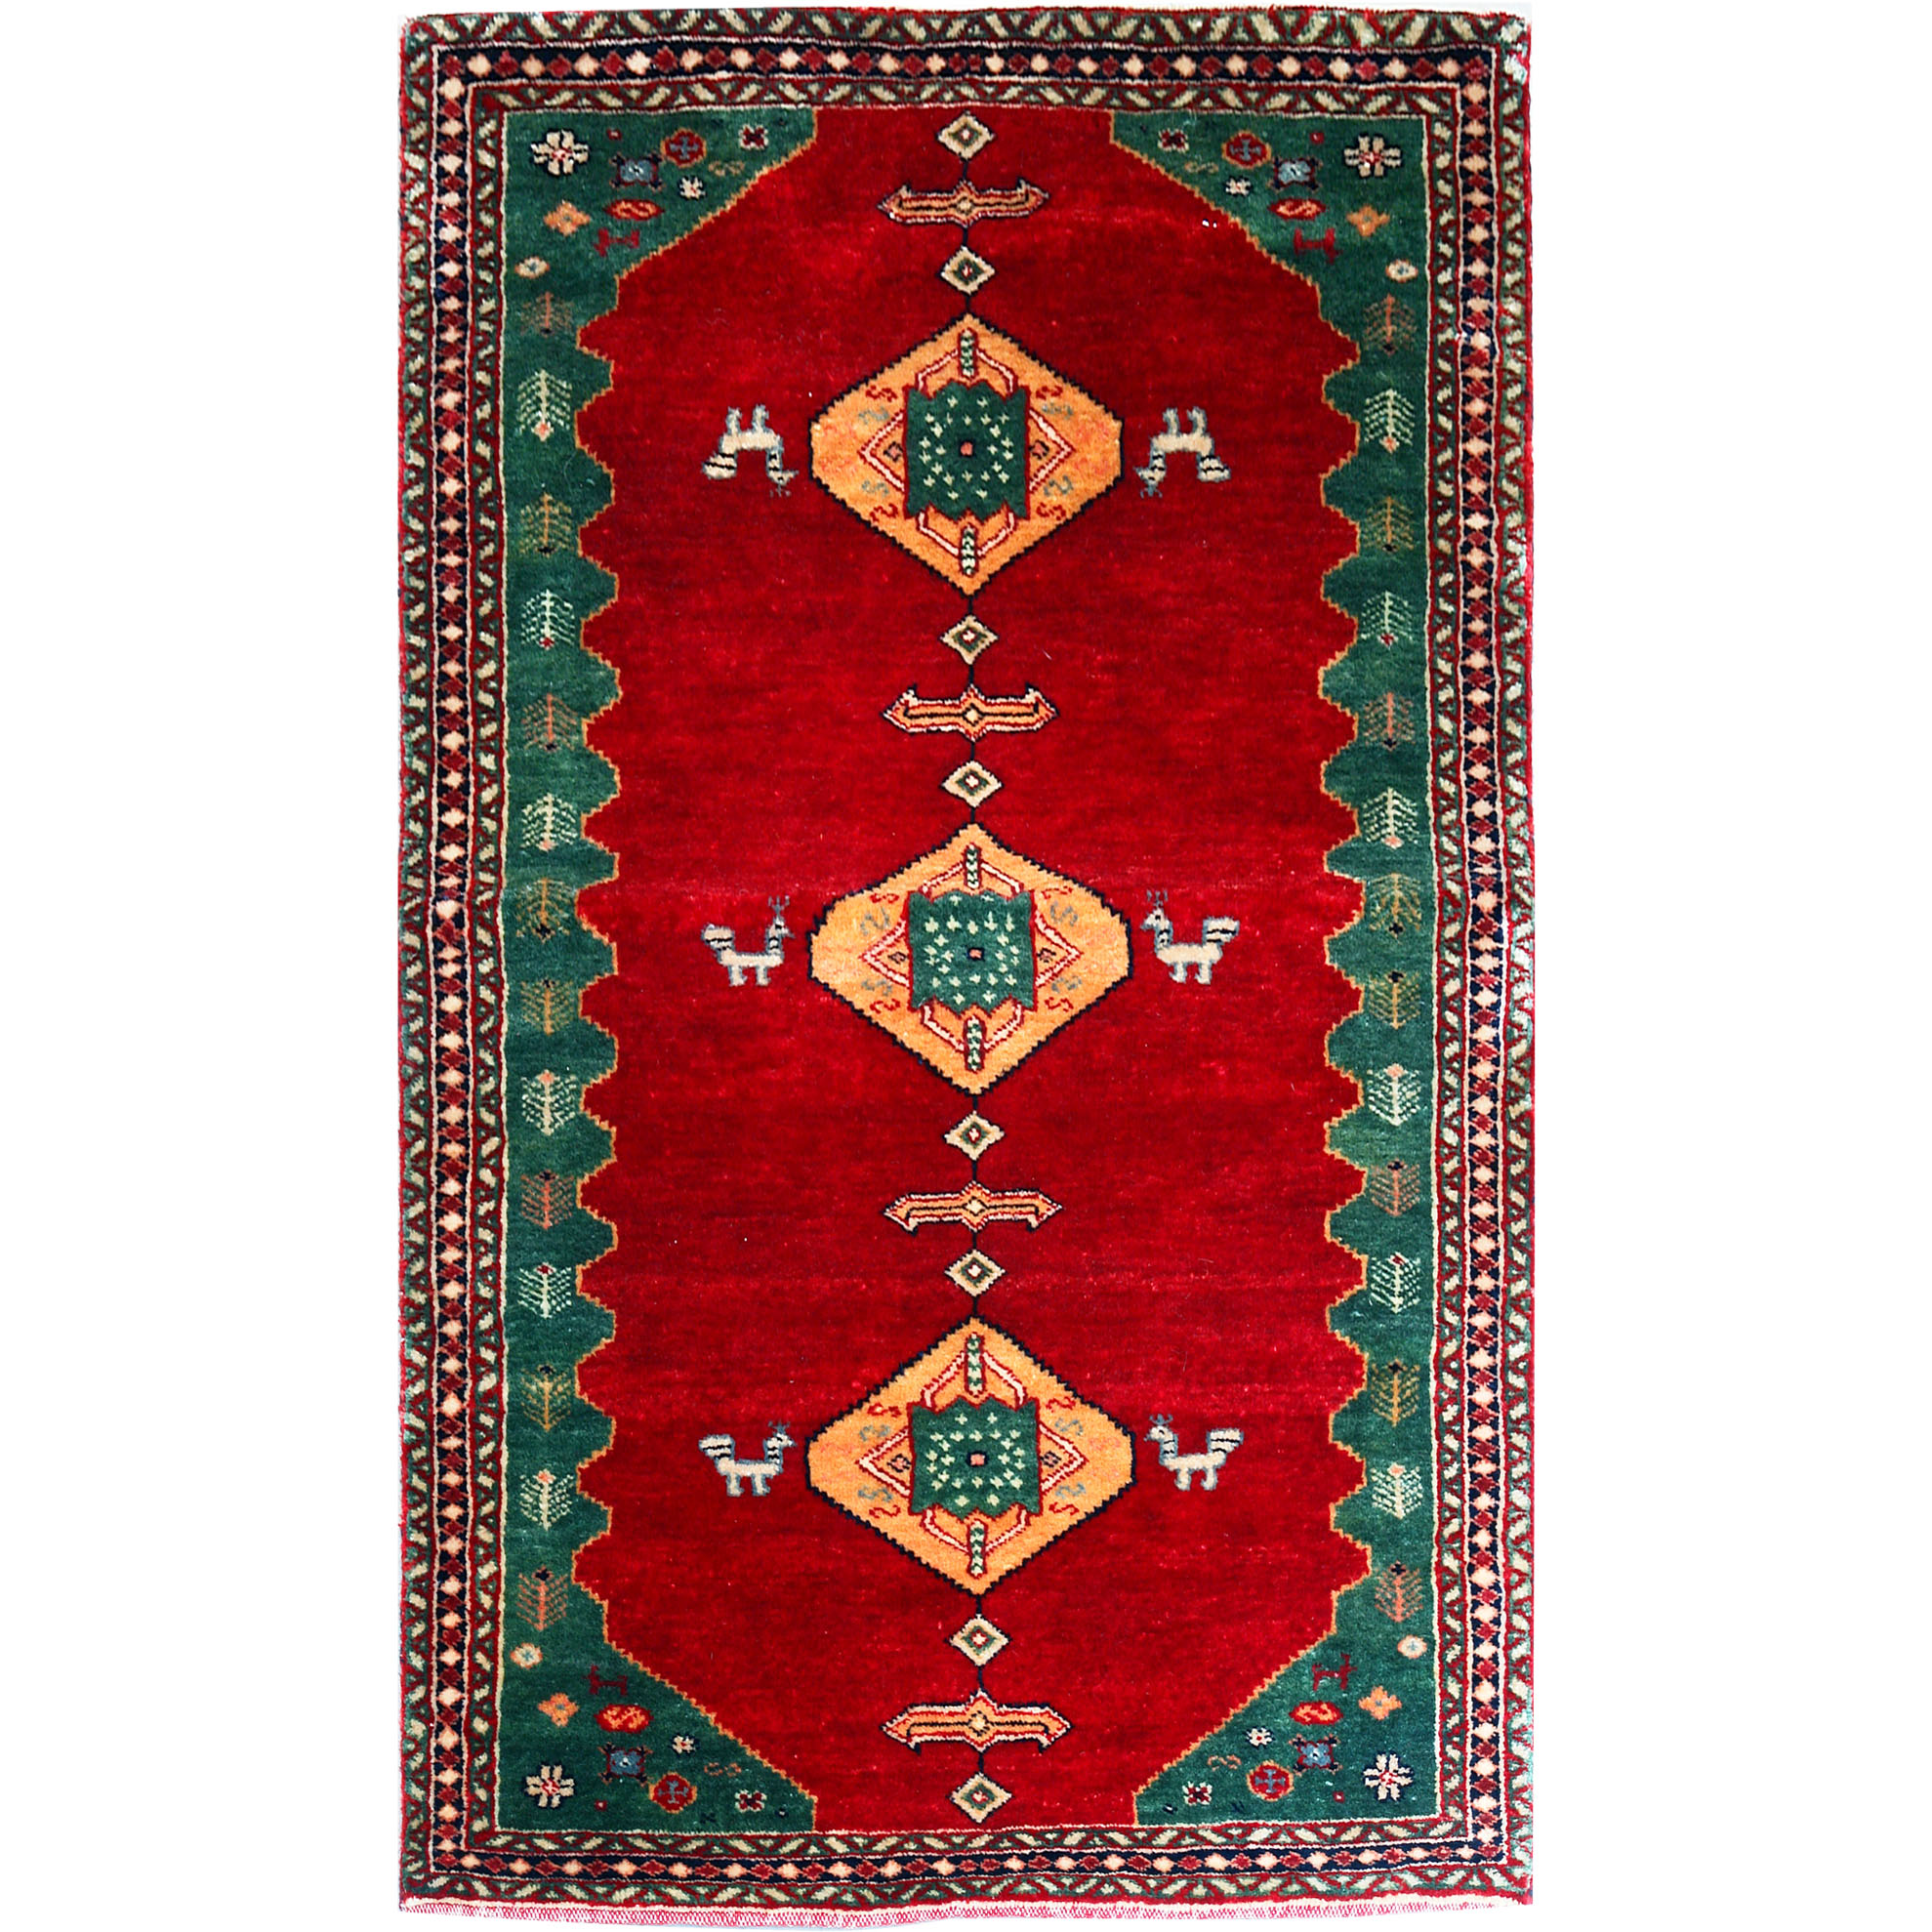 rug rugs guides persian silk oriental